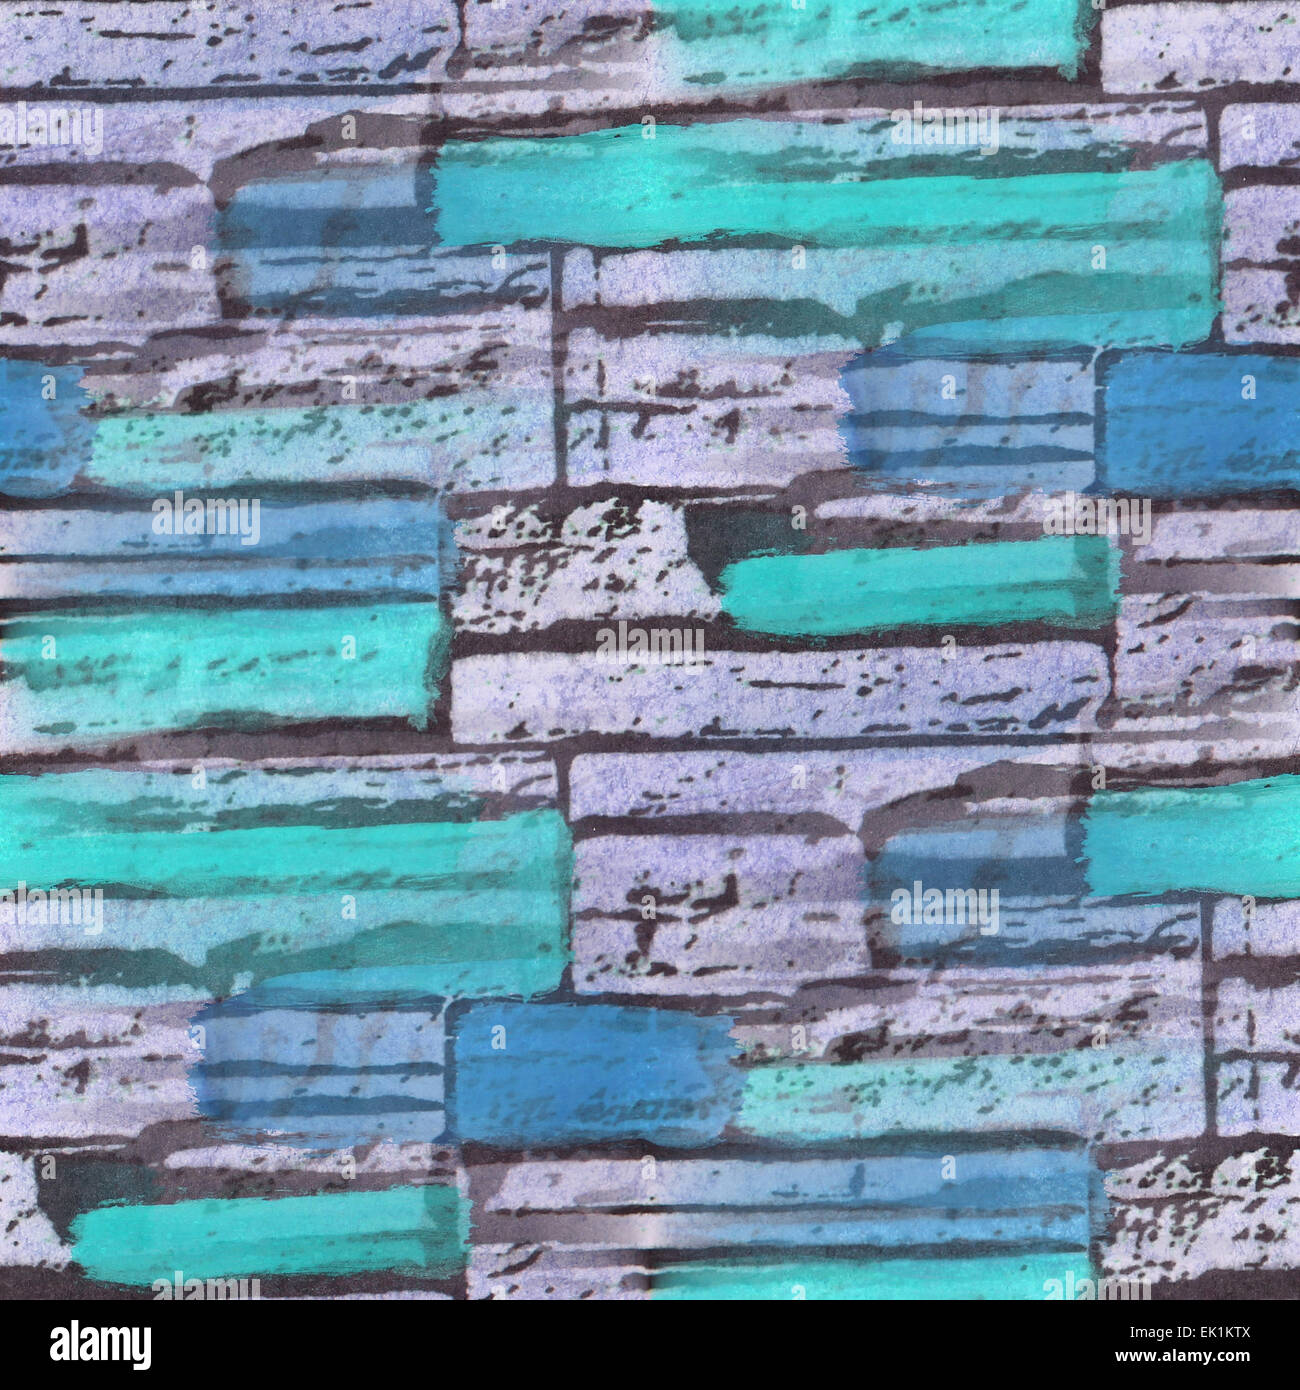 Seamless Blue Turquoise Bricks Texture Background Wallpaper Pat